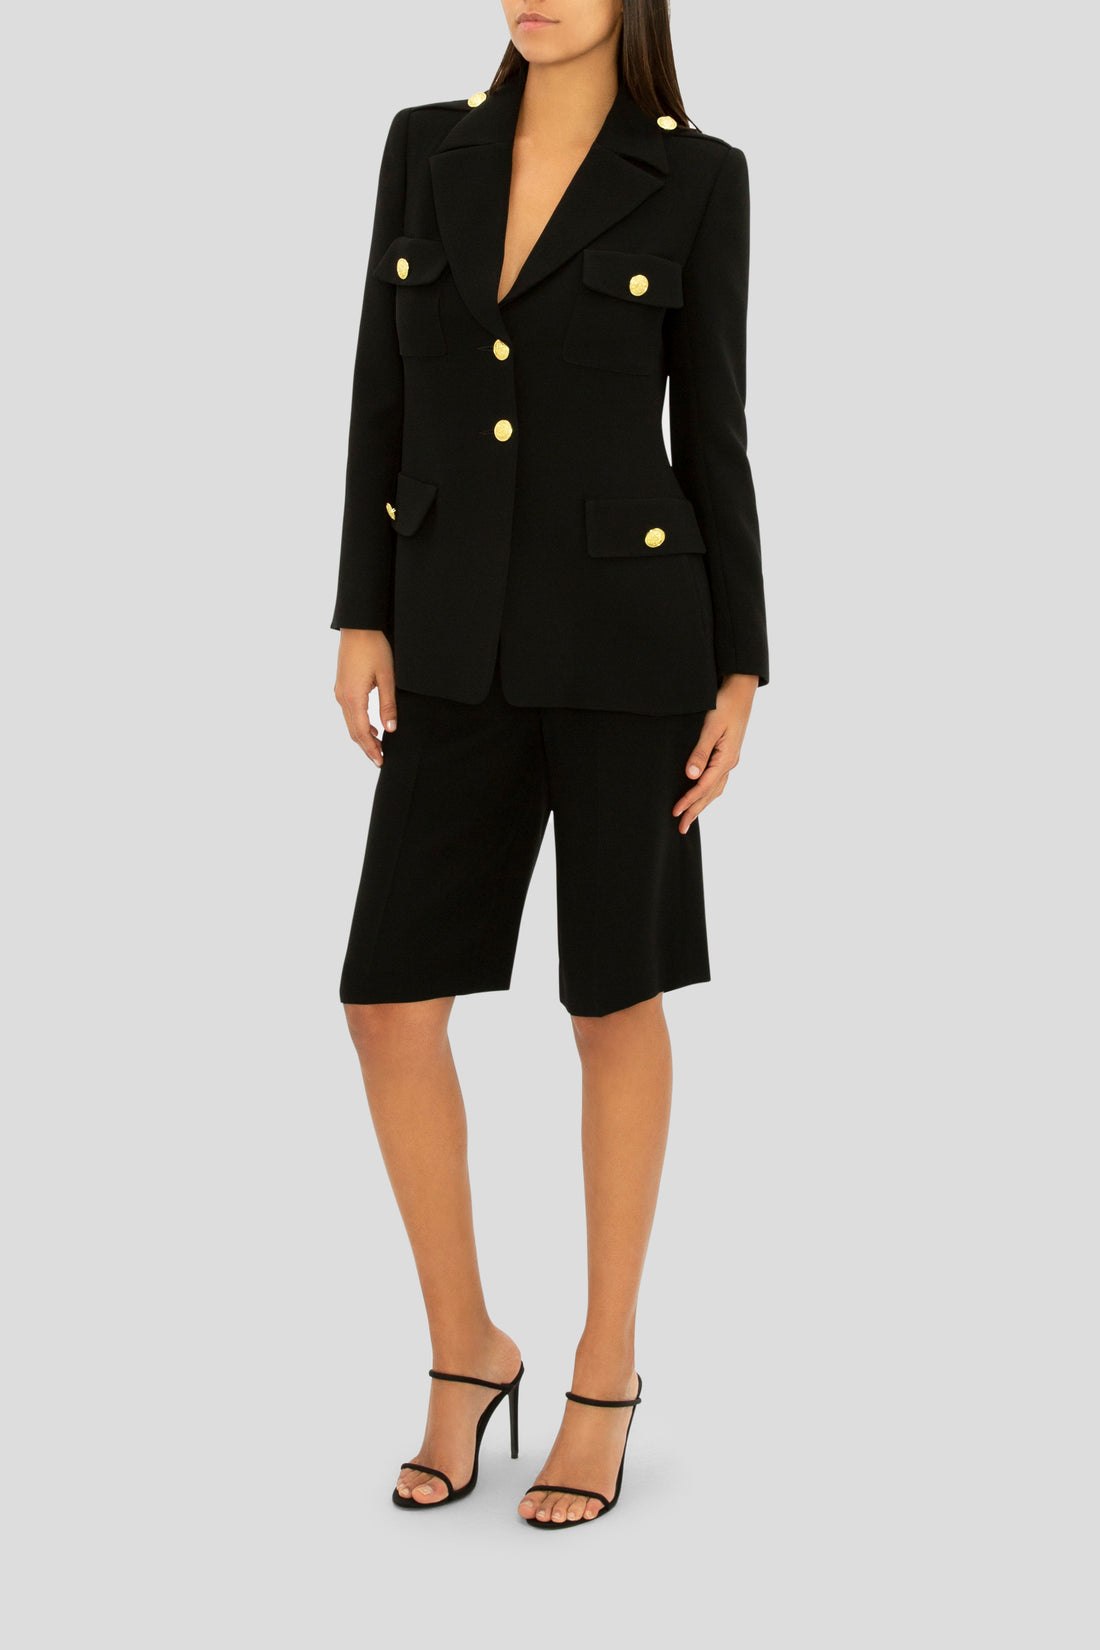 THE BLACK SAFARI JACKET